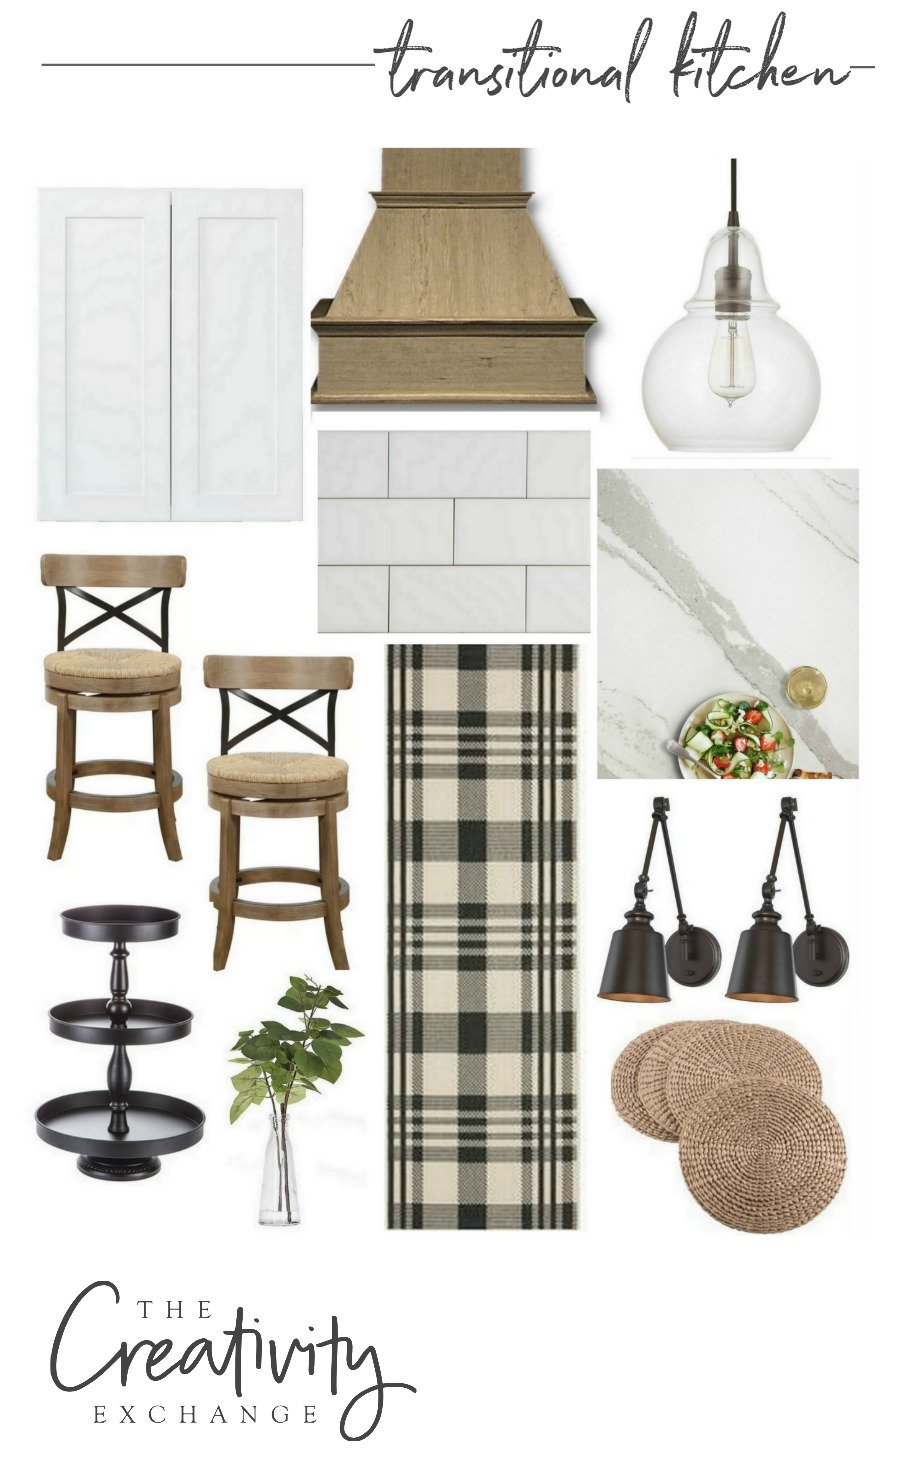 Transitional kitchen design mood board